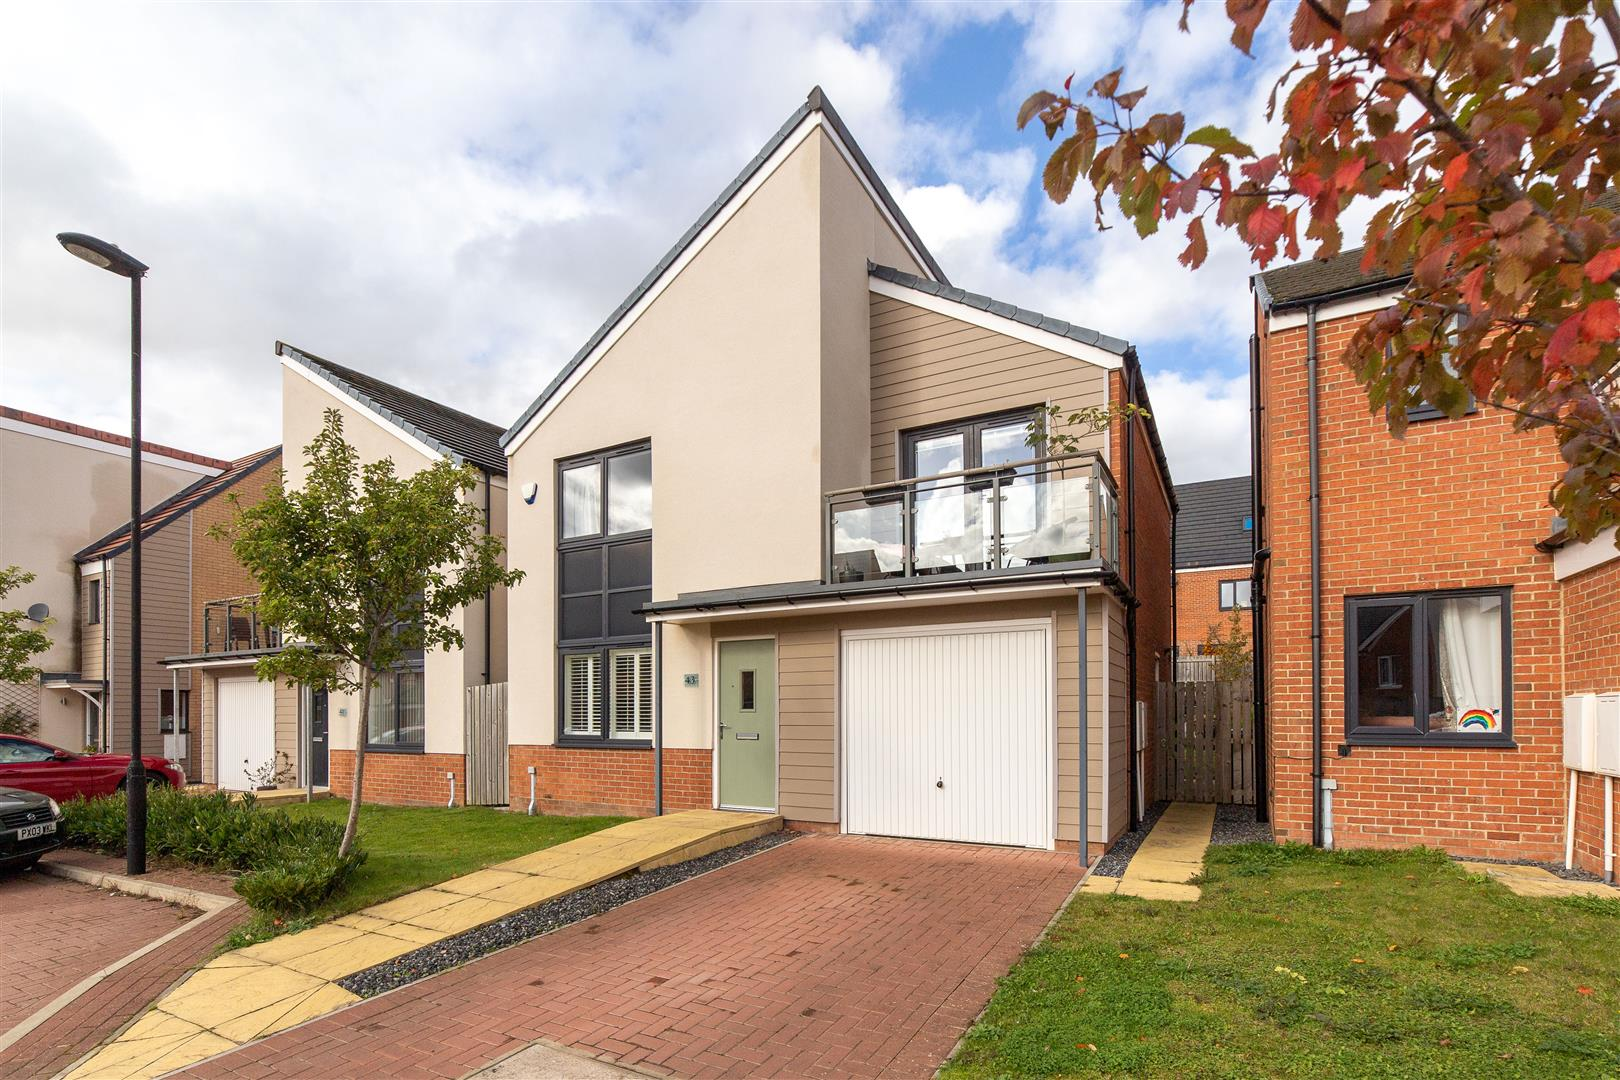 4 bed detached house for sale in Great Park, NE13 9DB - Property Image 1